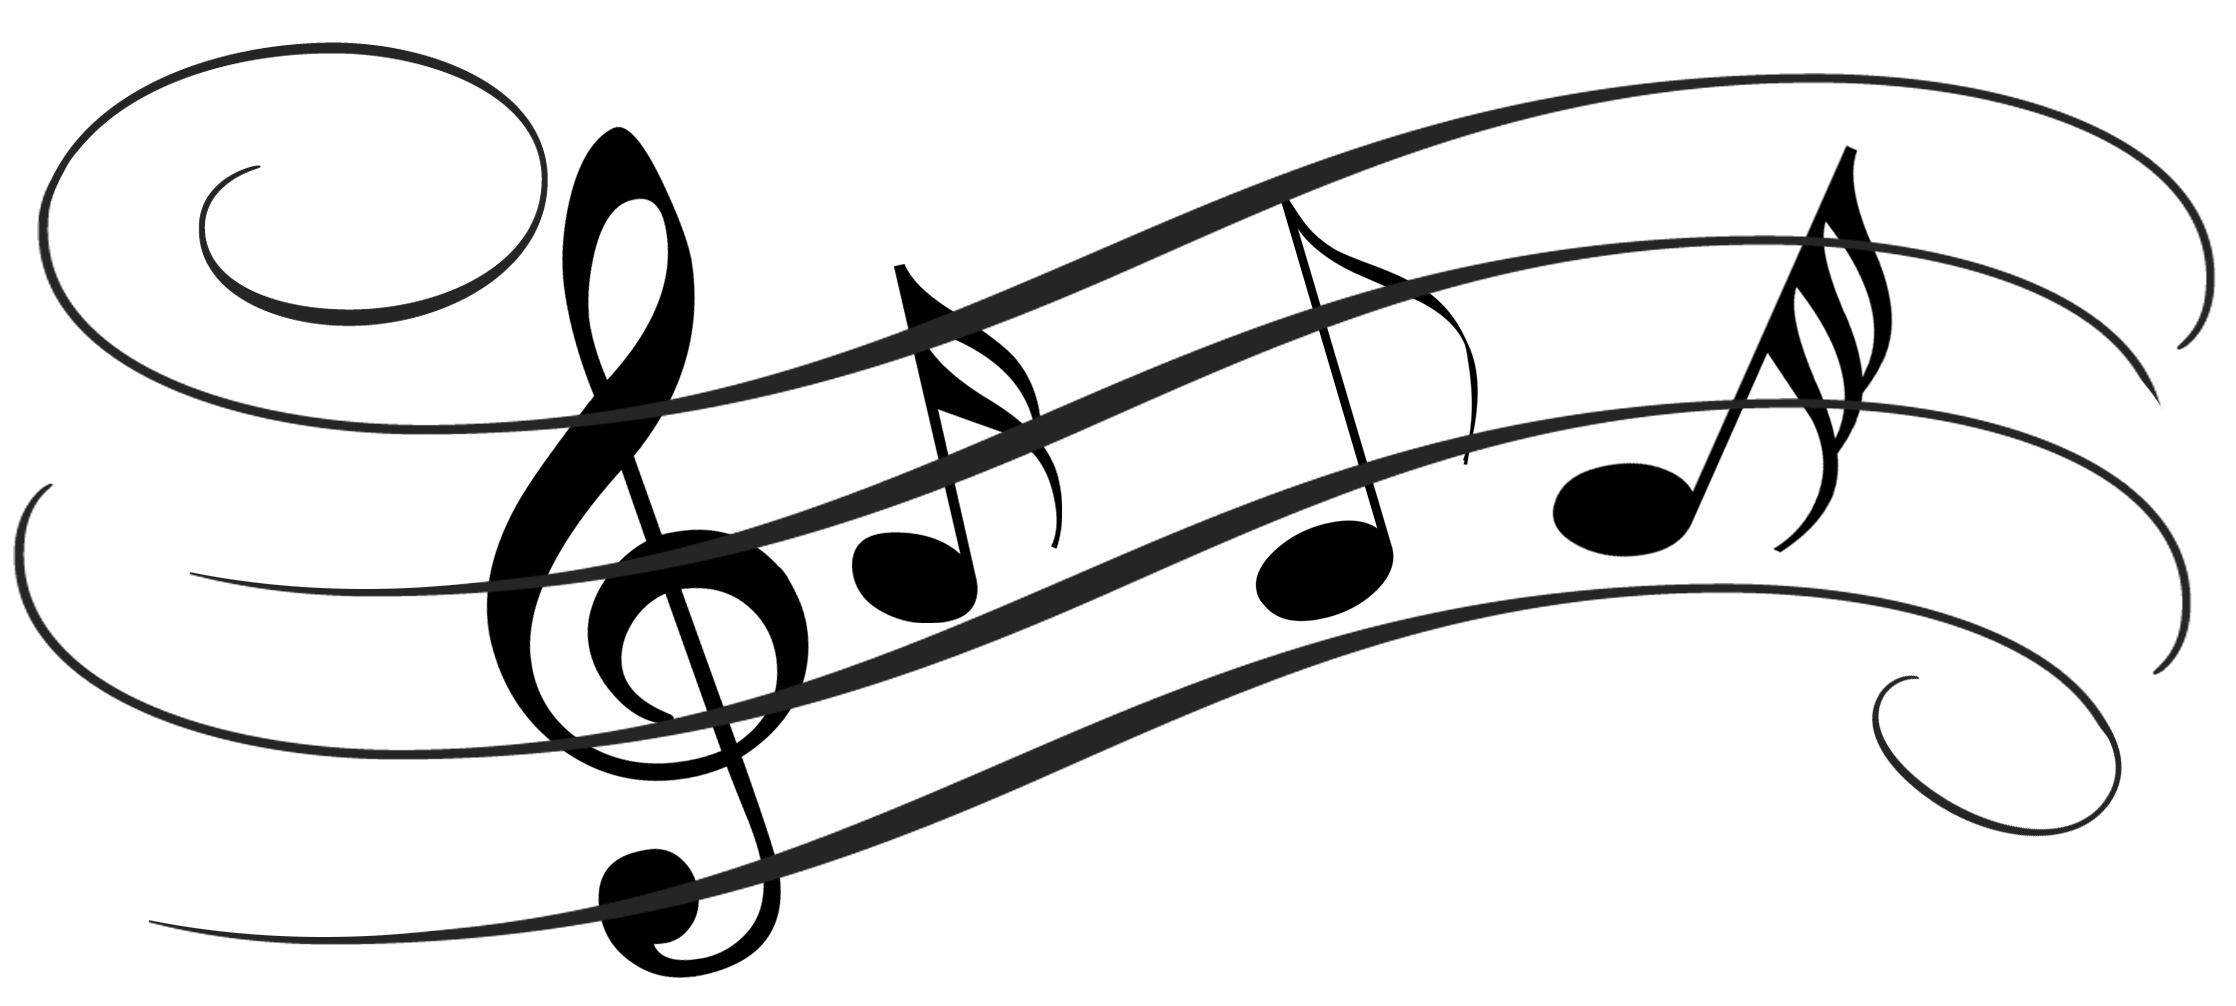 2236x1006 Music Notes On Staff Clipart